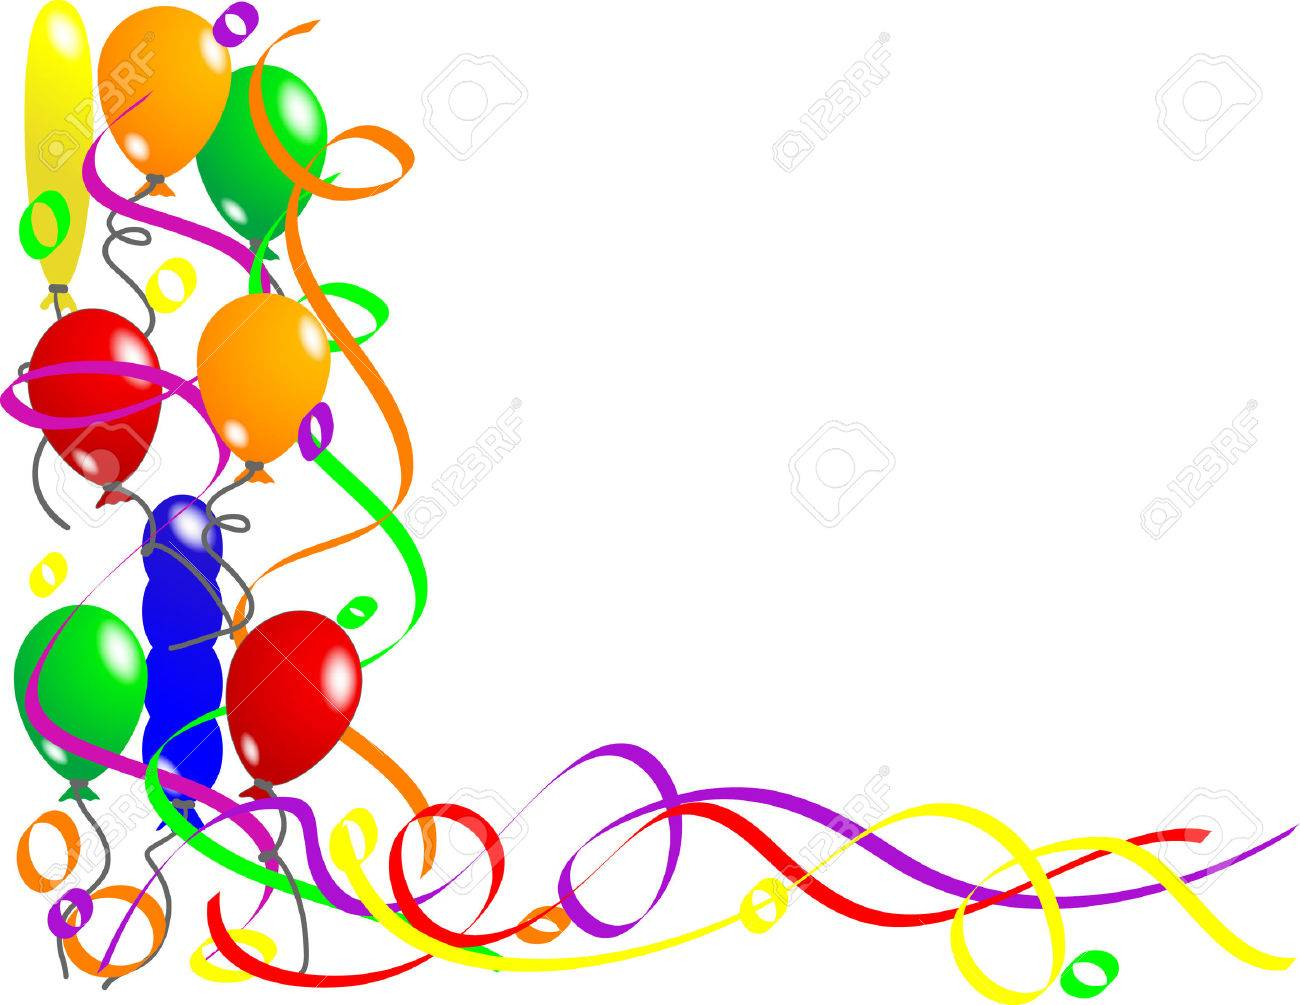 Colorful Party Background hd Party Background With Colorful